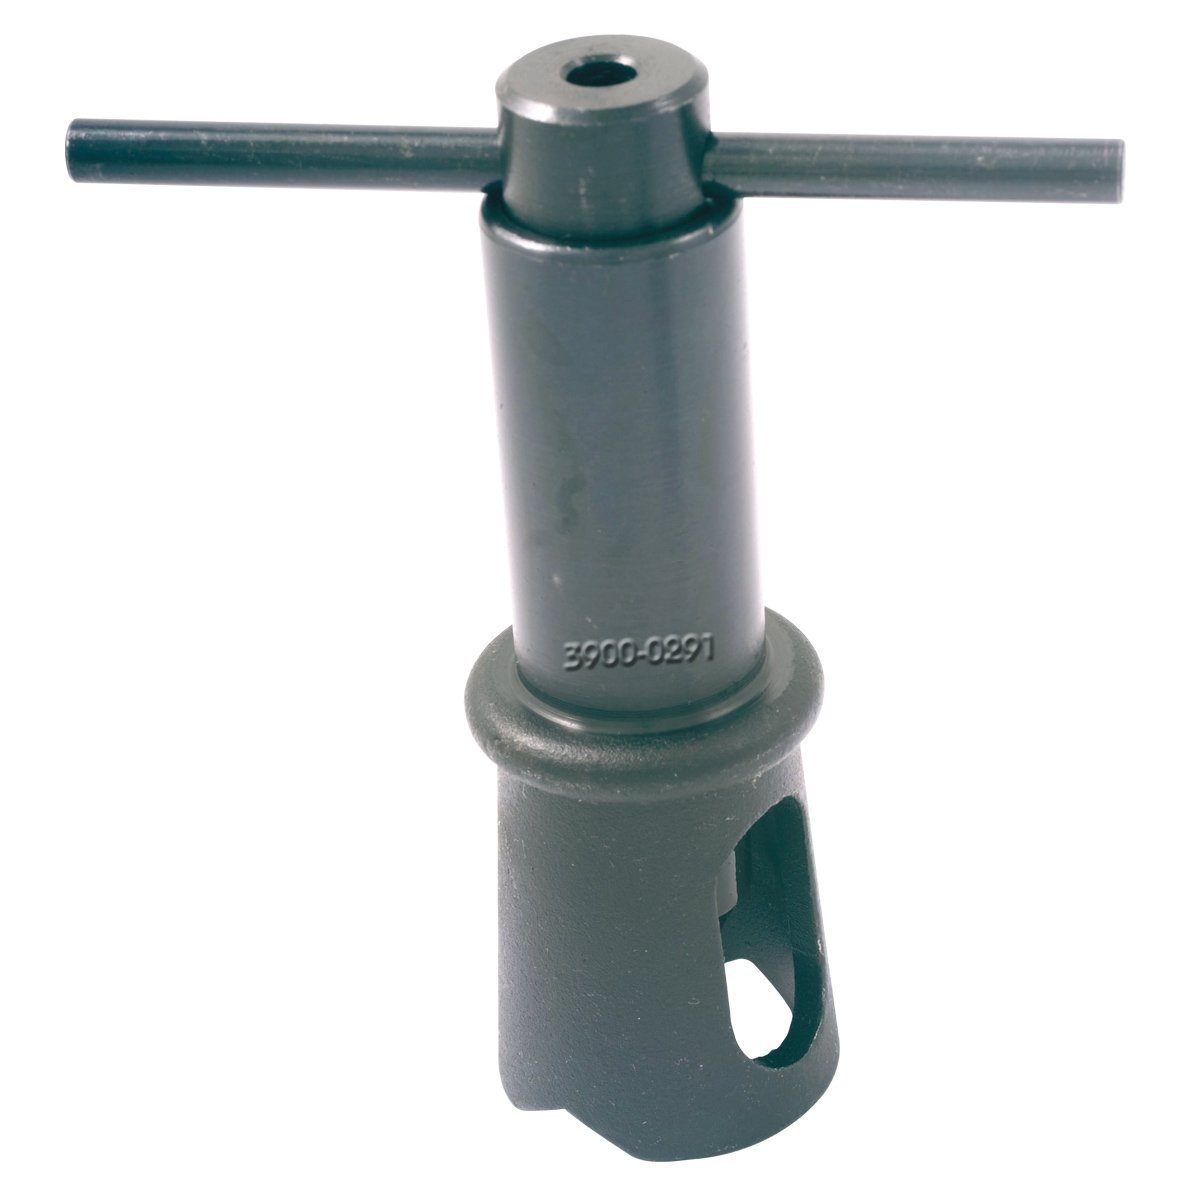 HHIP 3900-0291 Self Aligning Tap and Reamer Holder, 0-#8